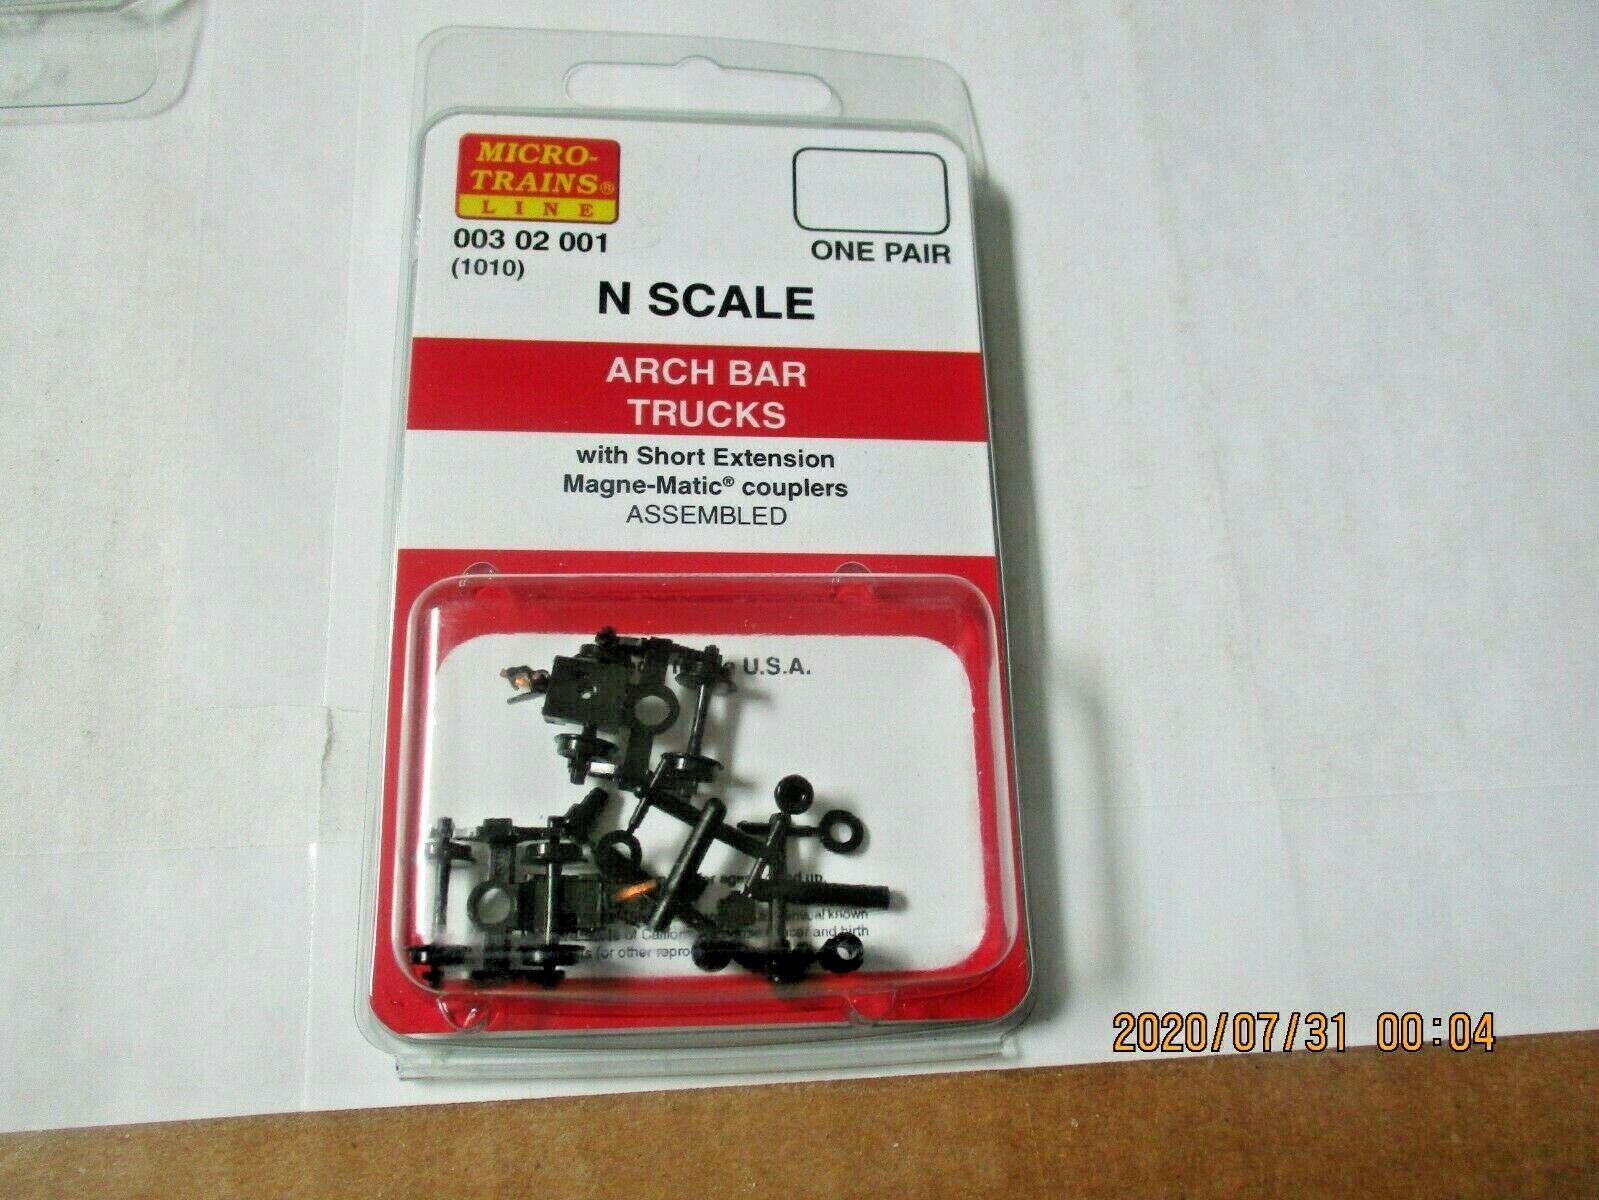 Micro-Trains Stock # 00302001 (1010)  Arch Bar Trucks Short Extension N-Scale